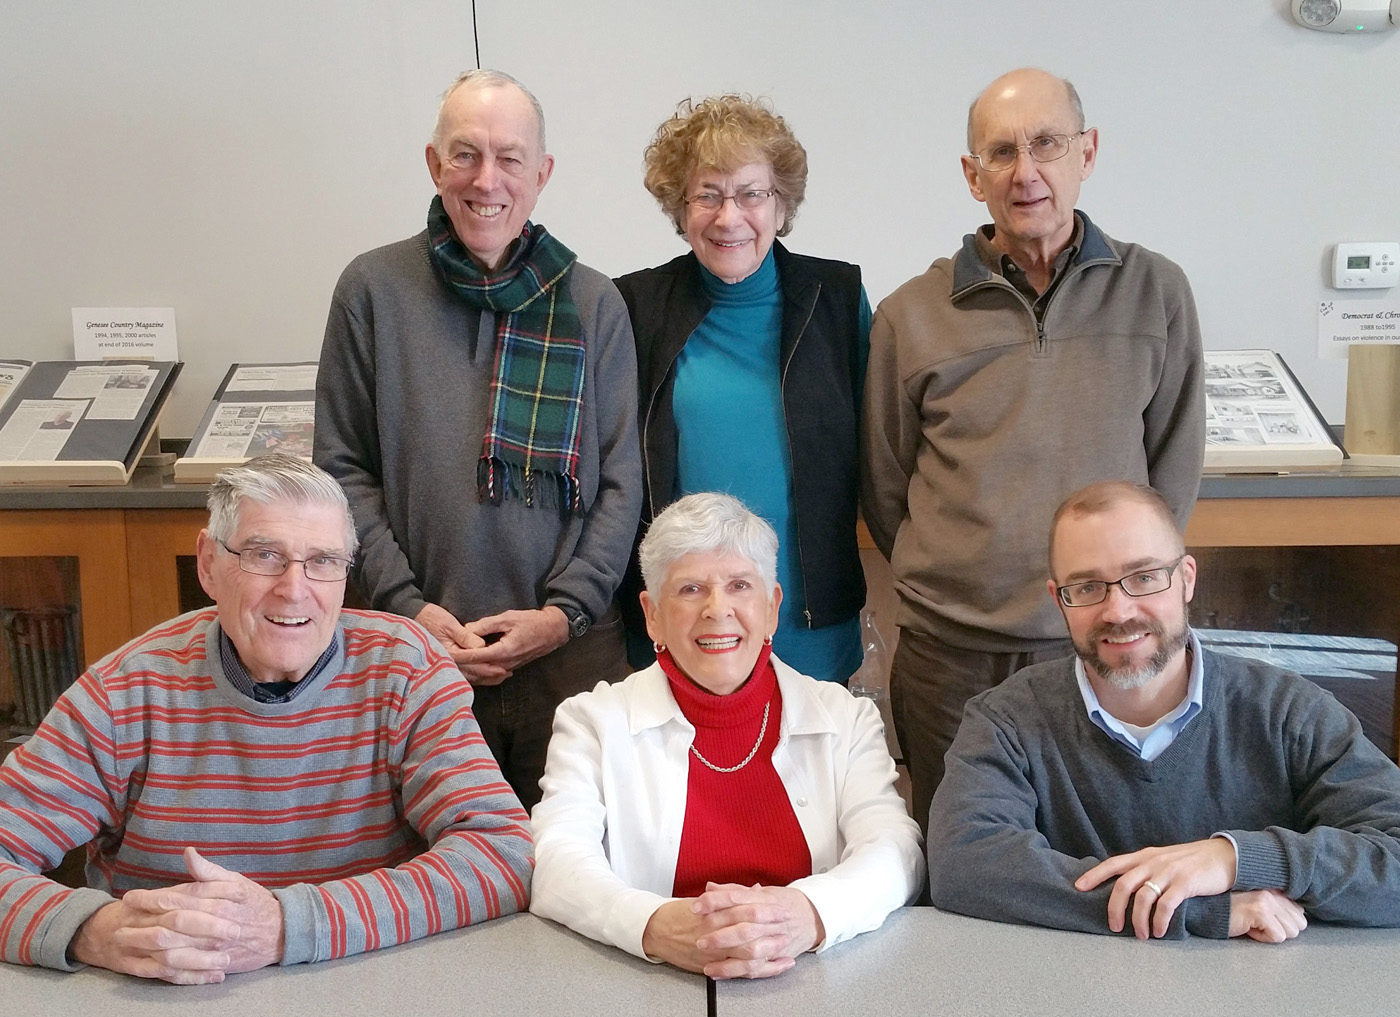 "An advisory board of local community members was formed to help guide the new initiative in Lifelong Learning (l-r): Standing - Ray Duncan, Rosie Rich, Gordon Fox;  Sitting - Richard Fenton, Joan Fenton, Jason Dauenhauer. Dauenhauer is Director of Multigenerational Engagement and leads the initiative. Richard ""Bud"" Meade is absent from the photo."